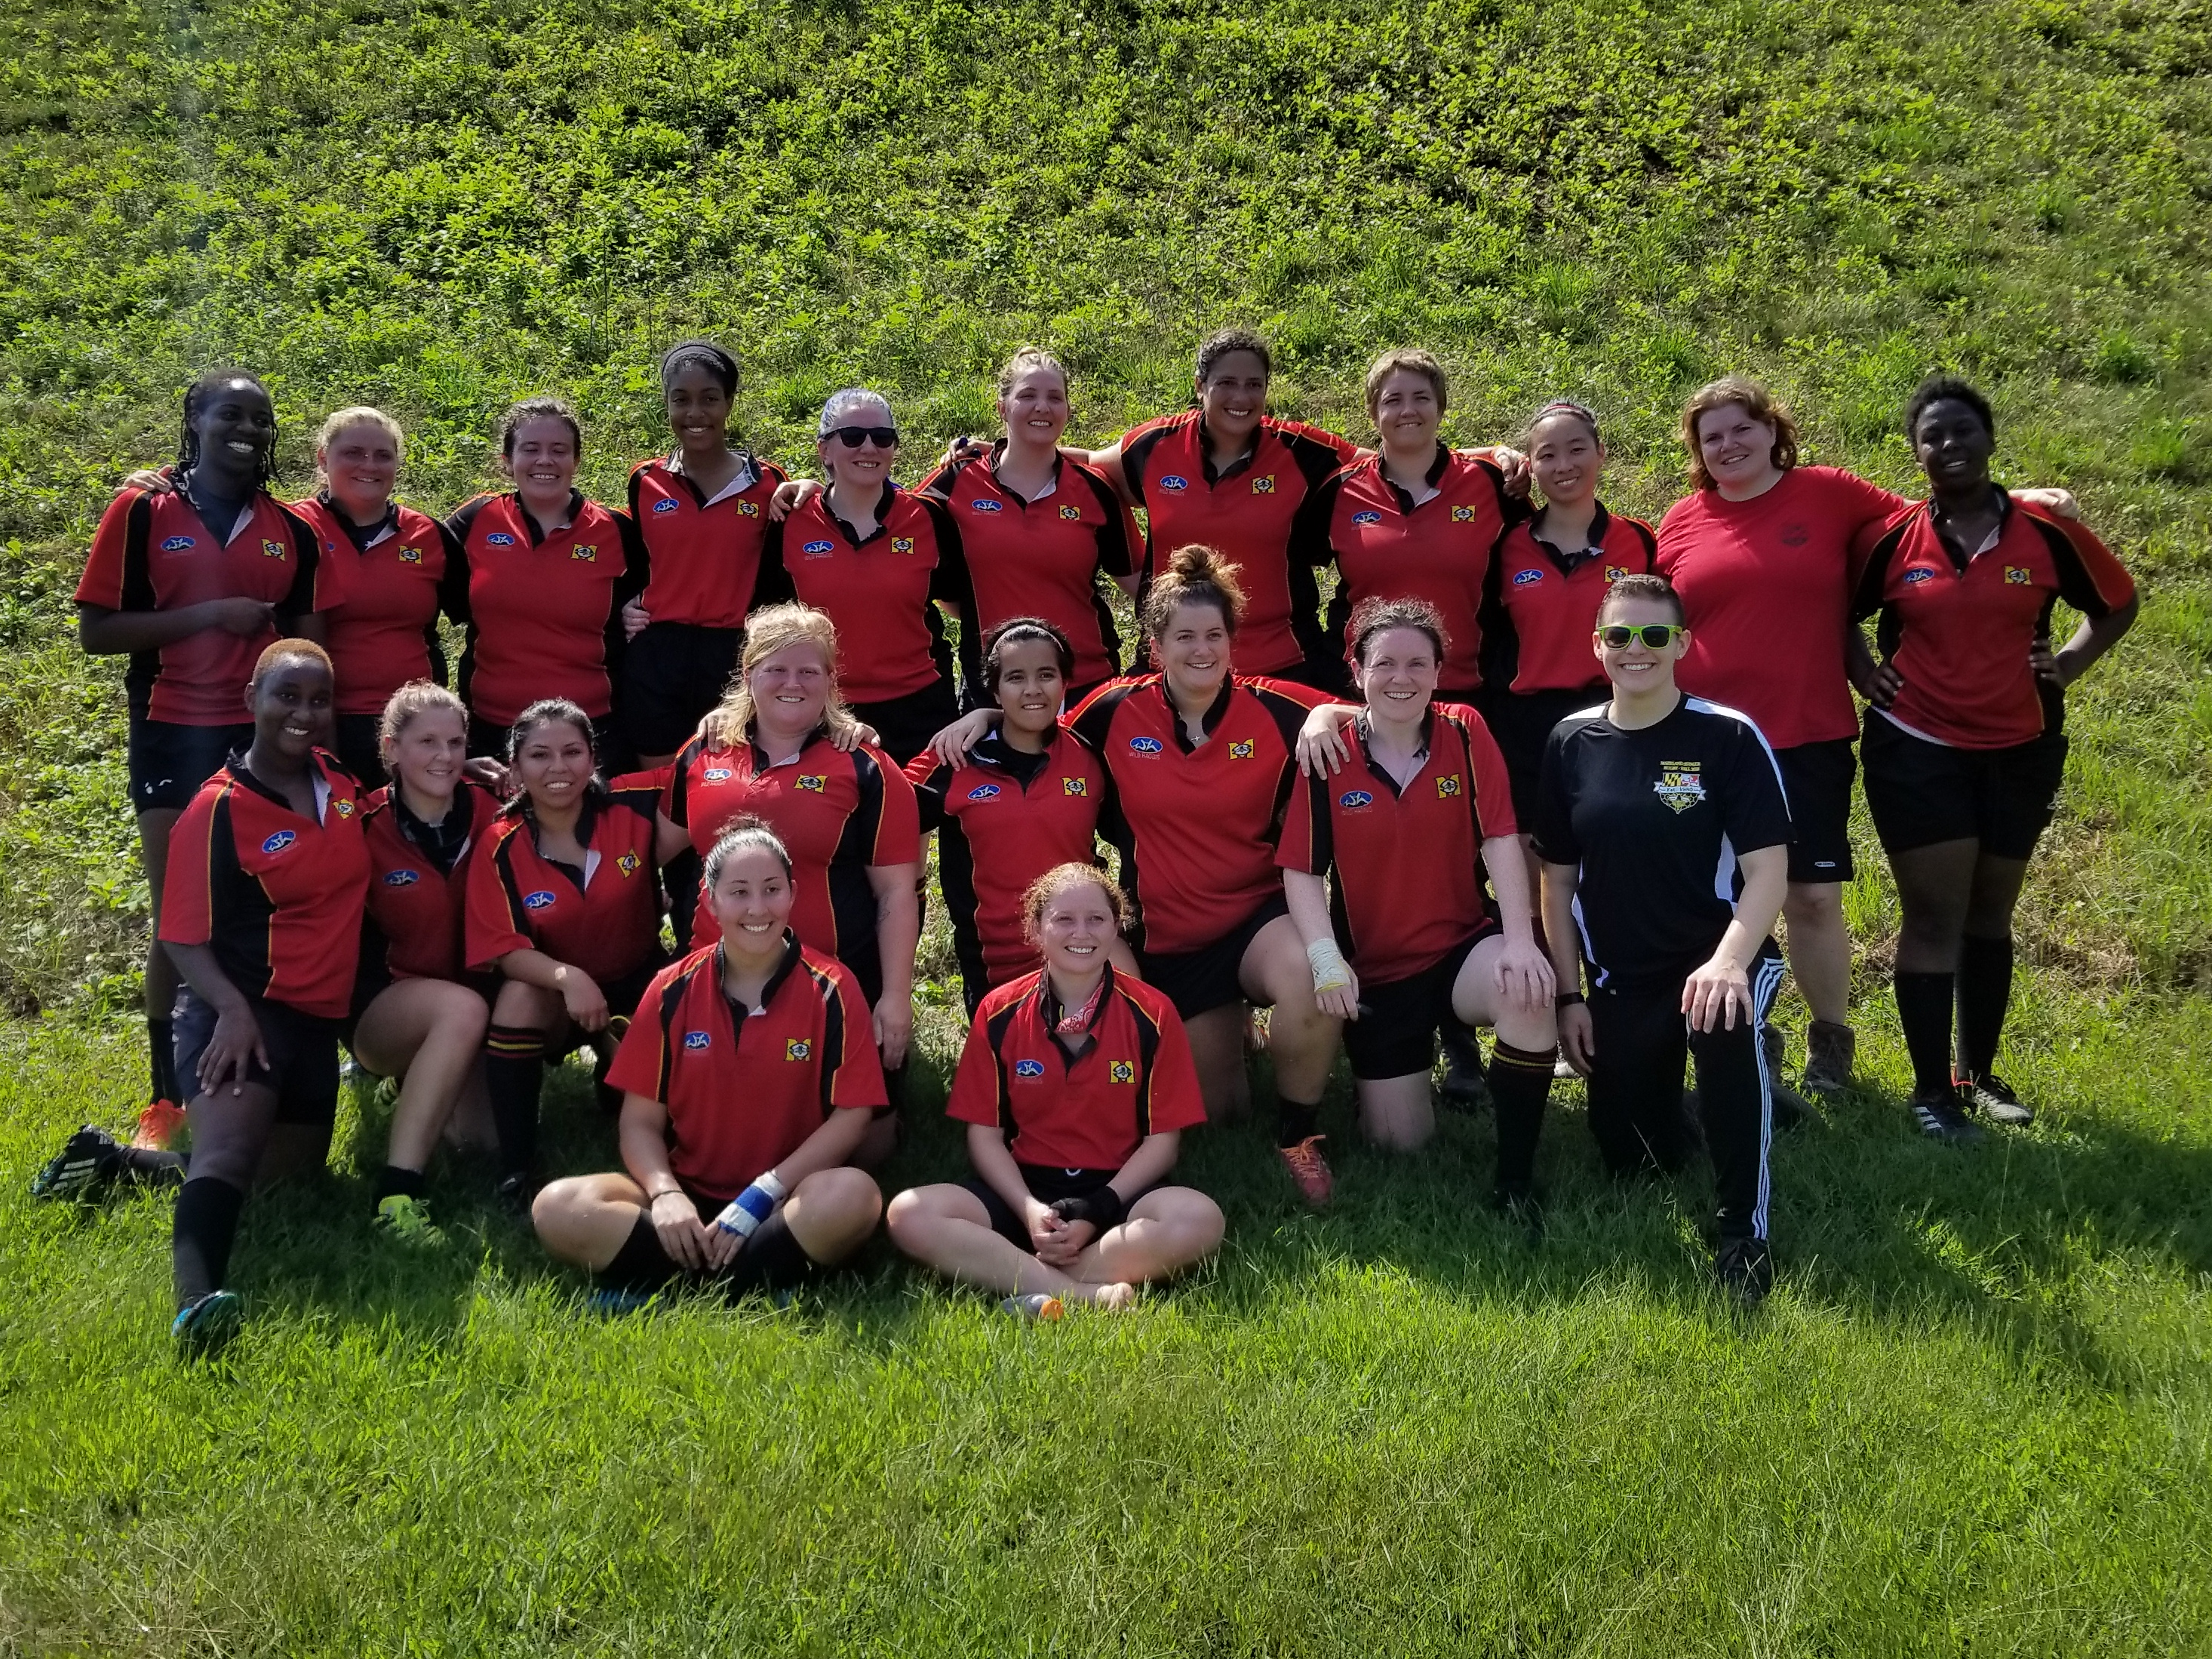 Maryland Stingers Rugby